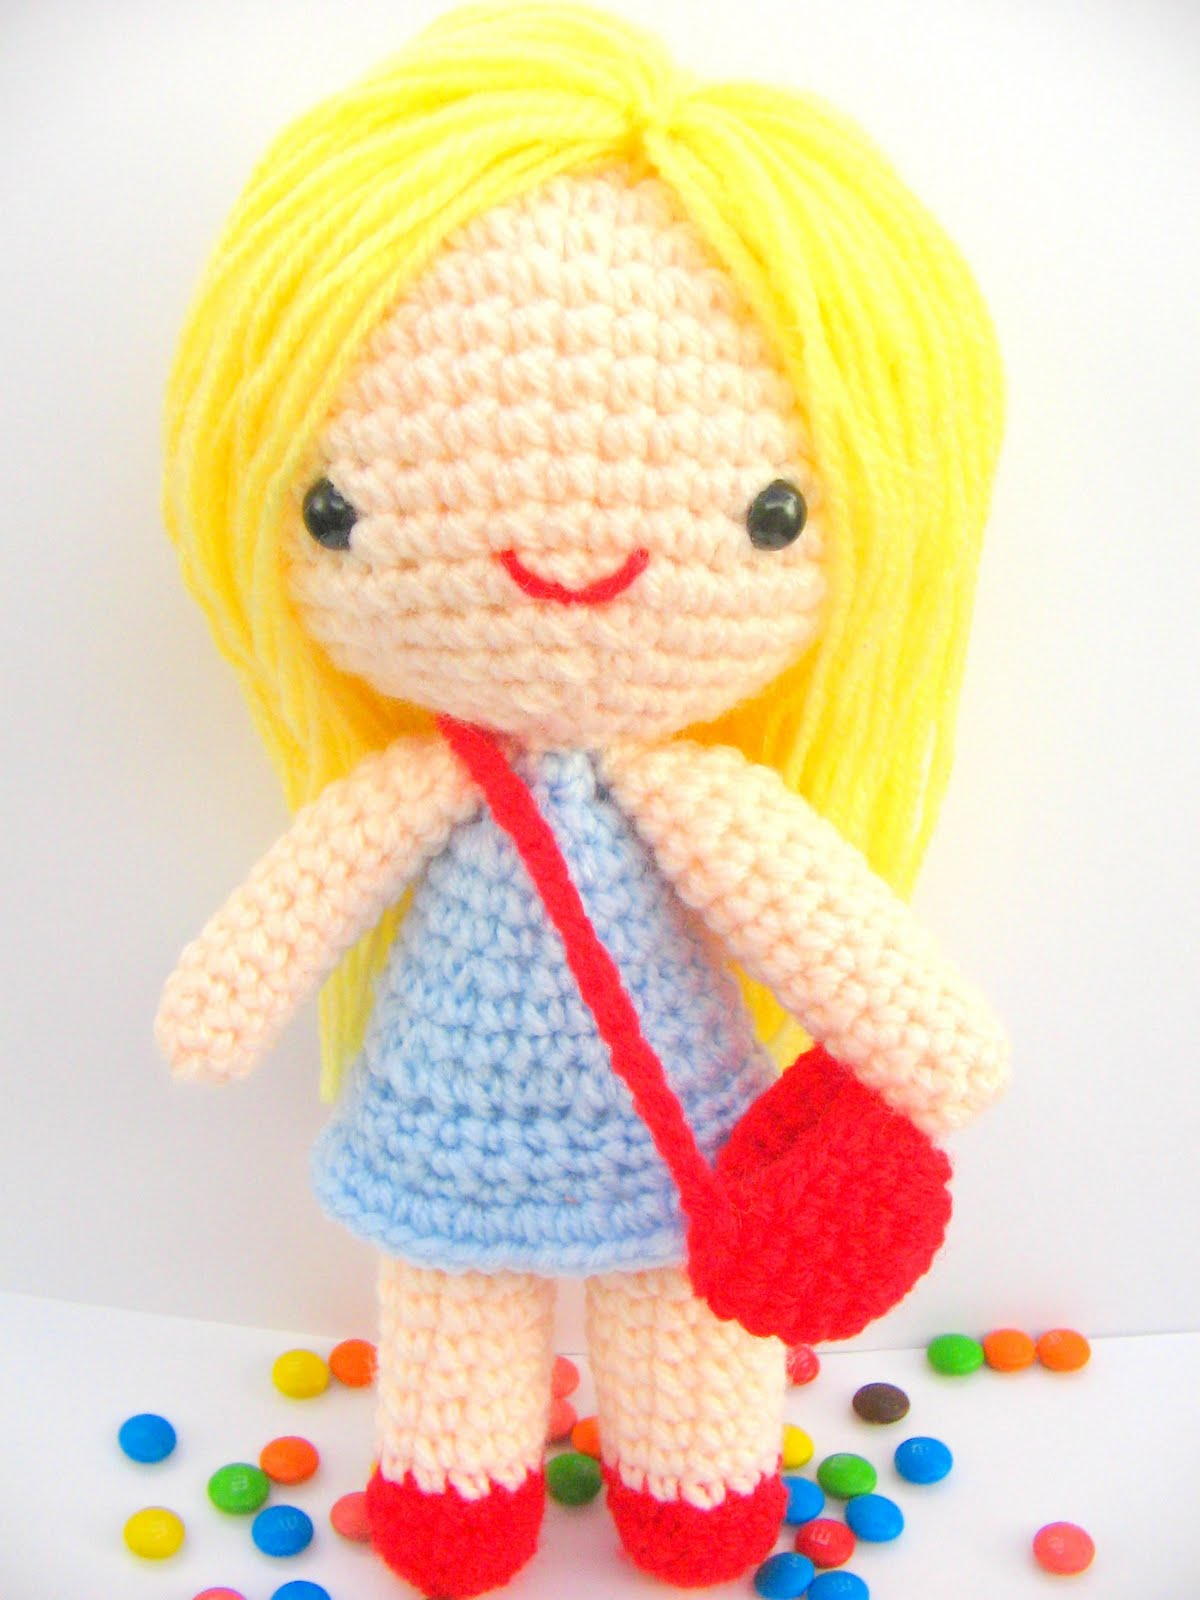 Amigurumi Doll Tutorial For Beginners : 2000 Free Amigurumi Patterns: Free amigurumi pattern ...